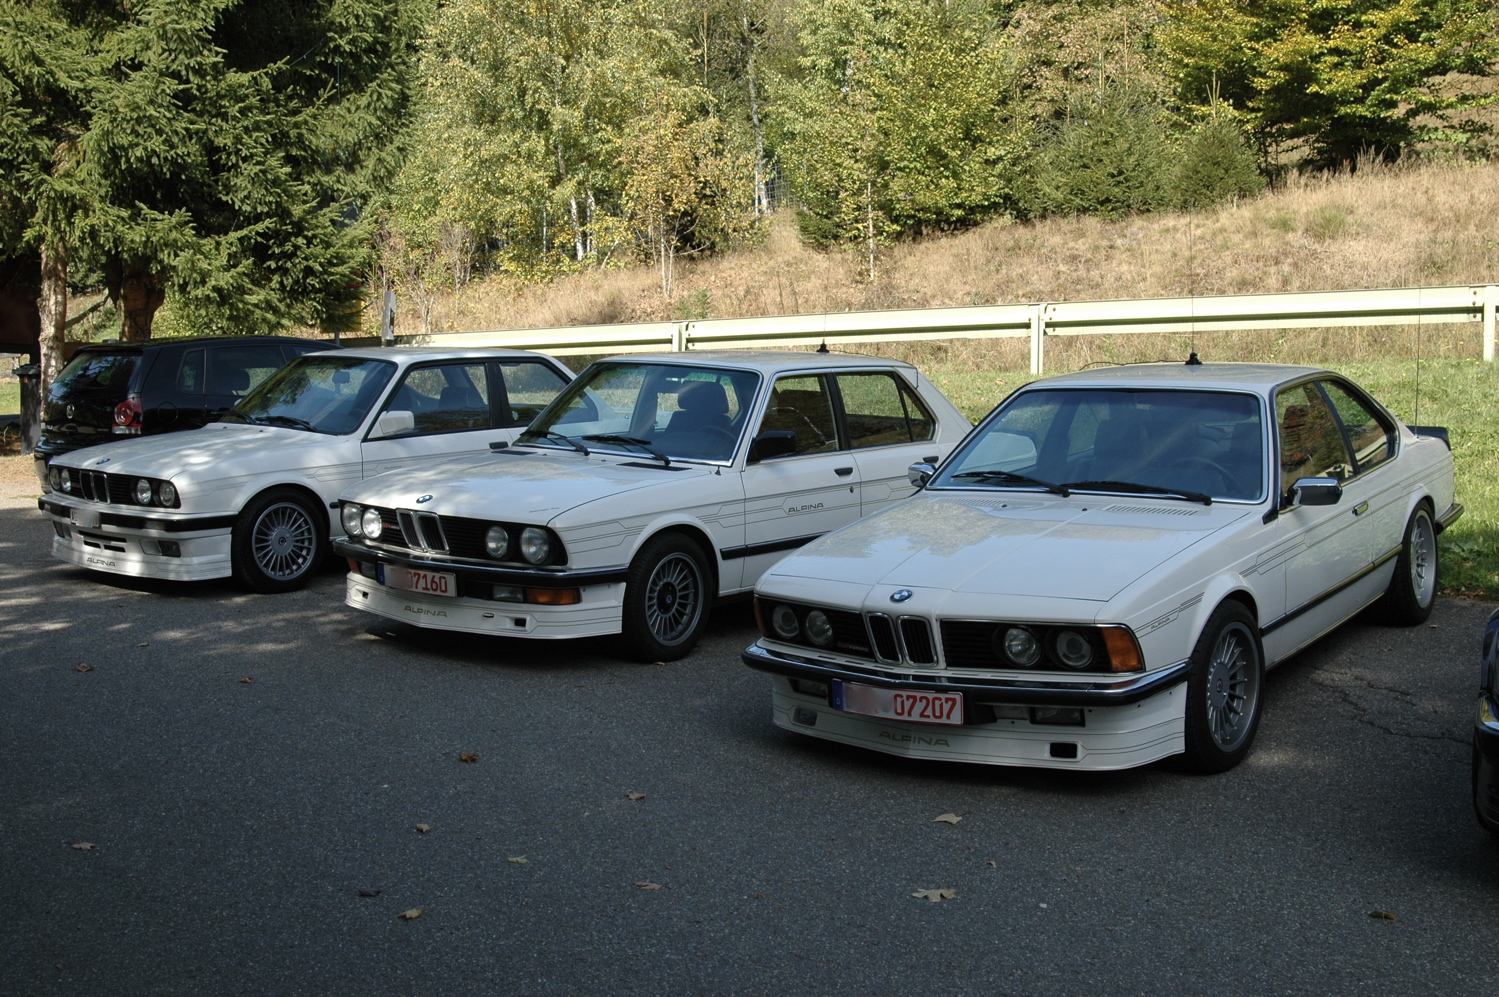 Classic BMW/ALPINA in the